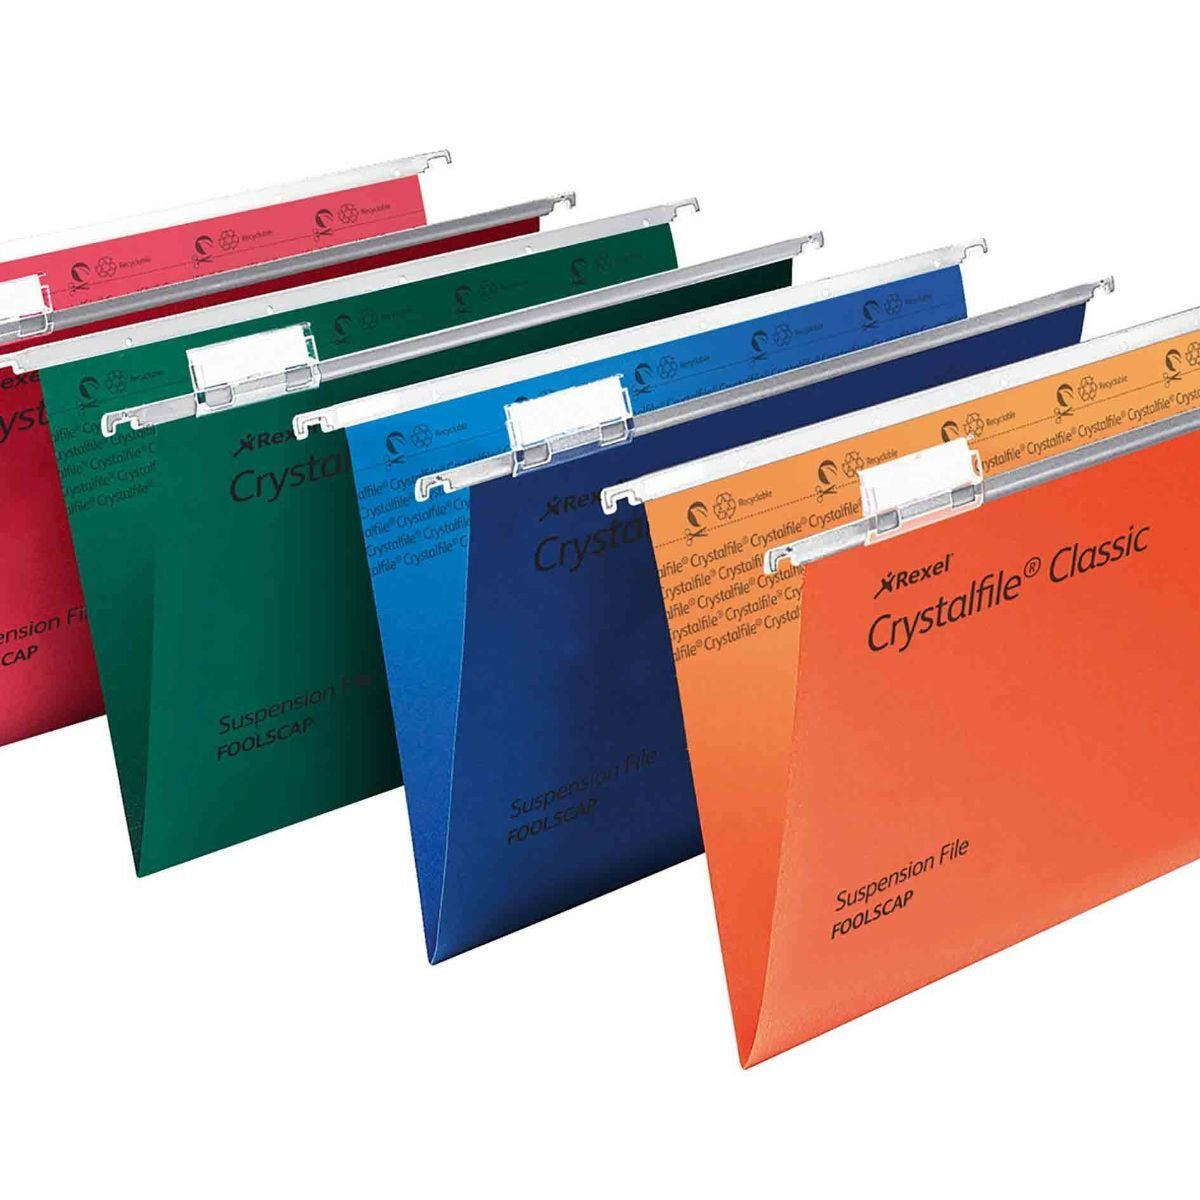 Rexel Crystalfile Classic Foolscap Suspension File 15mm Pack of 50 Red